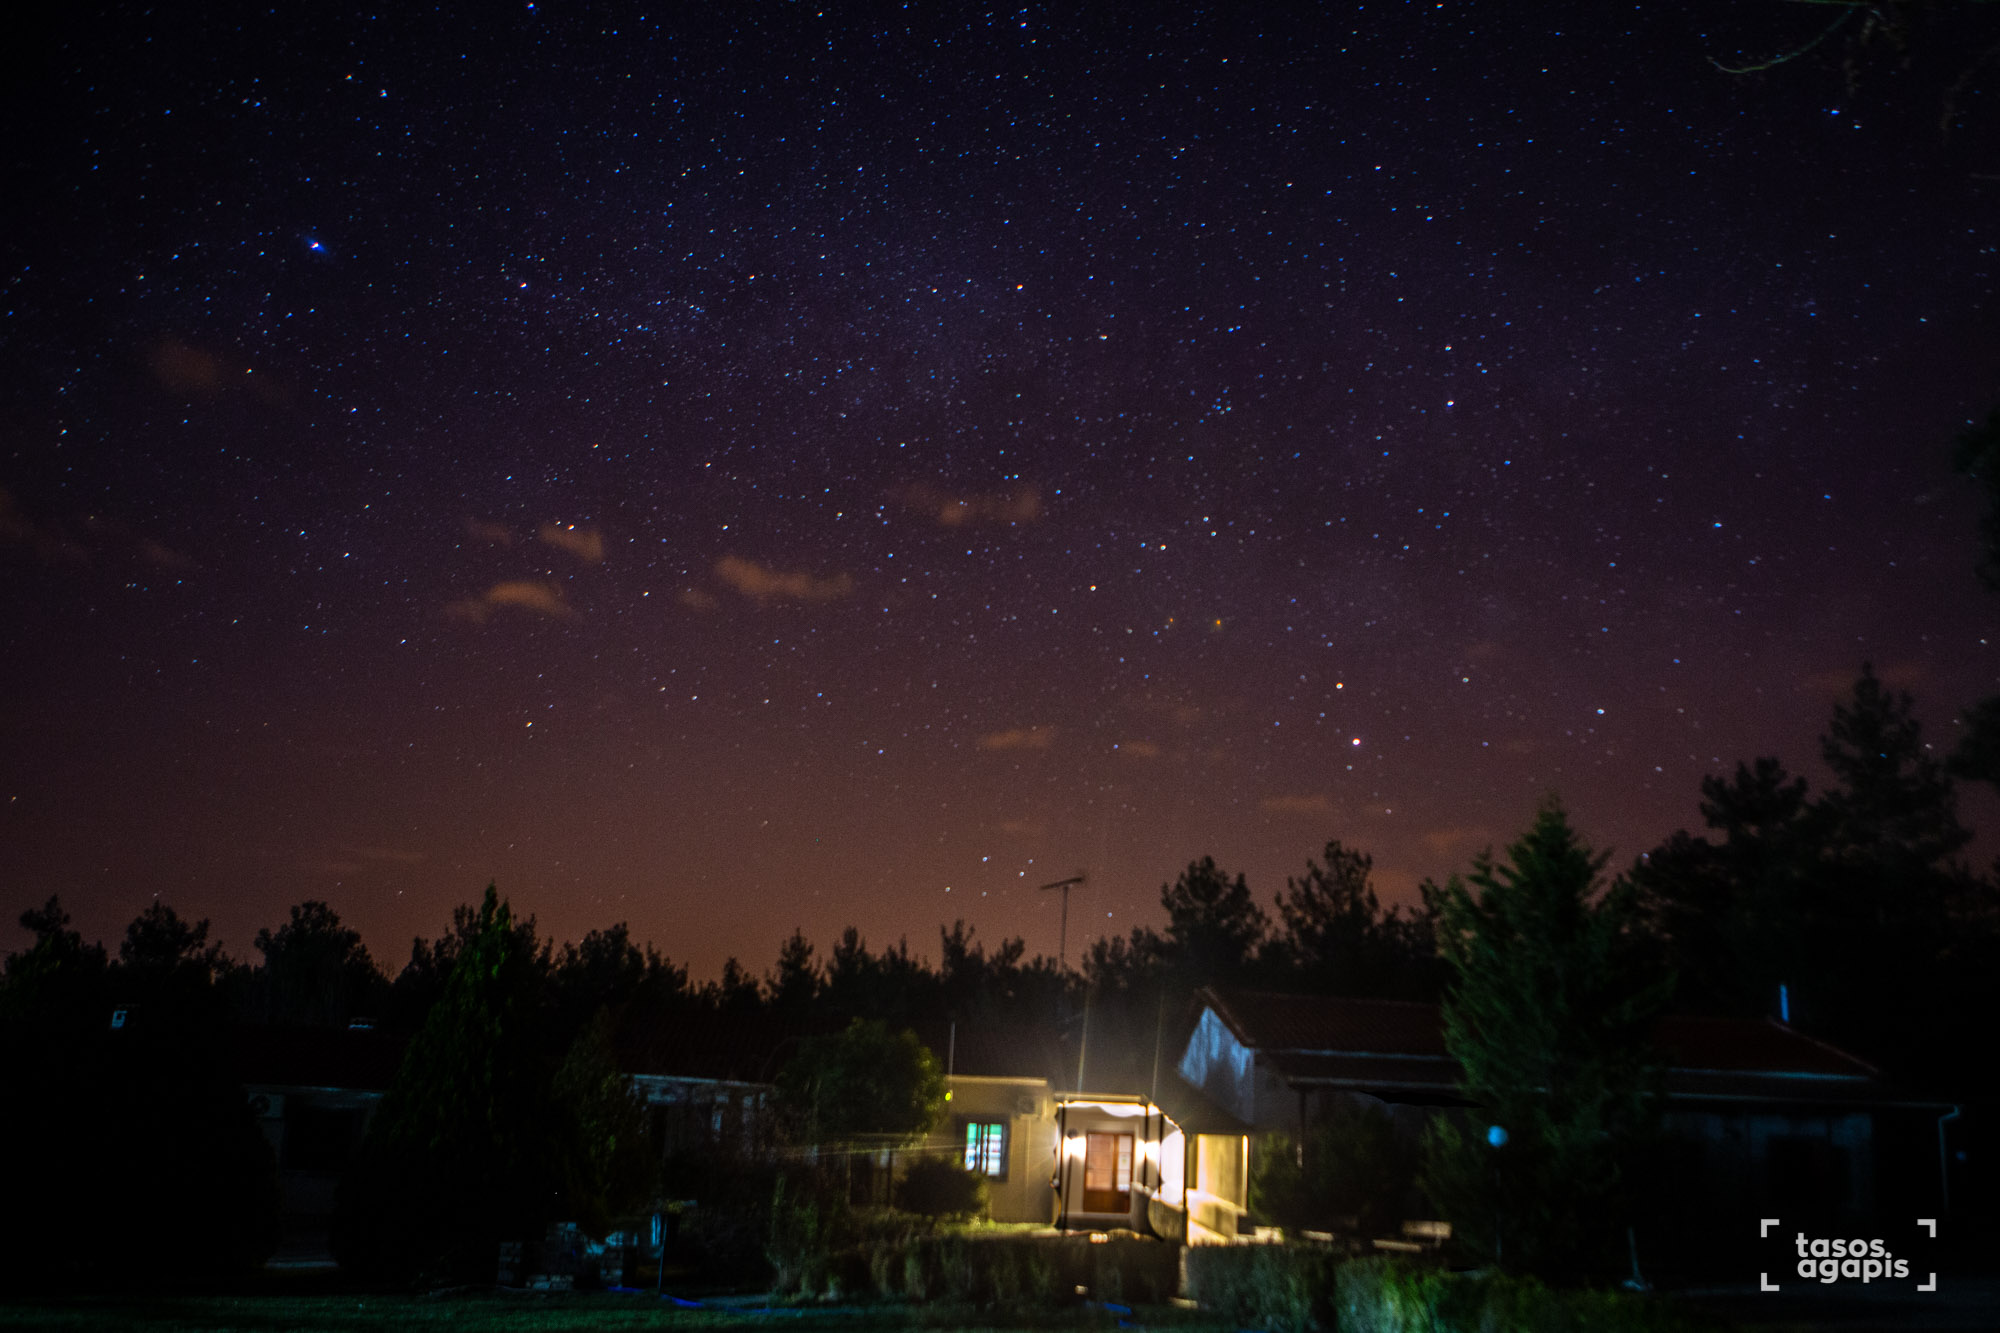 Stary night over hotel